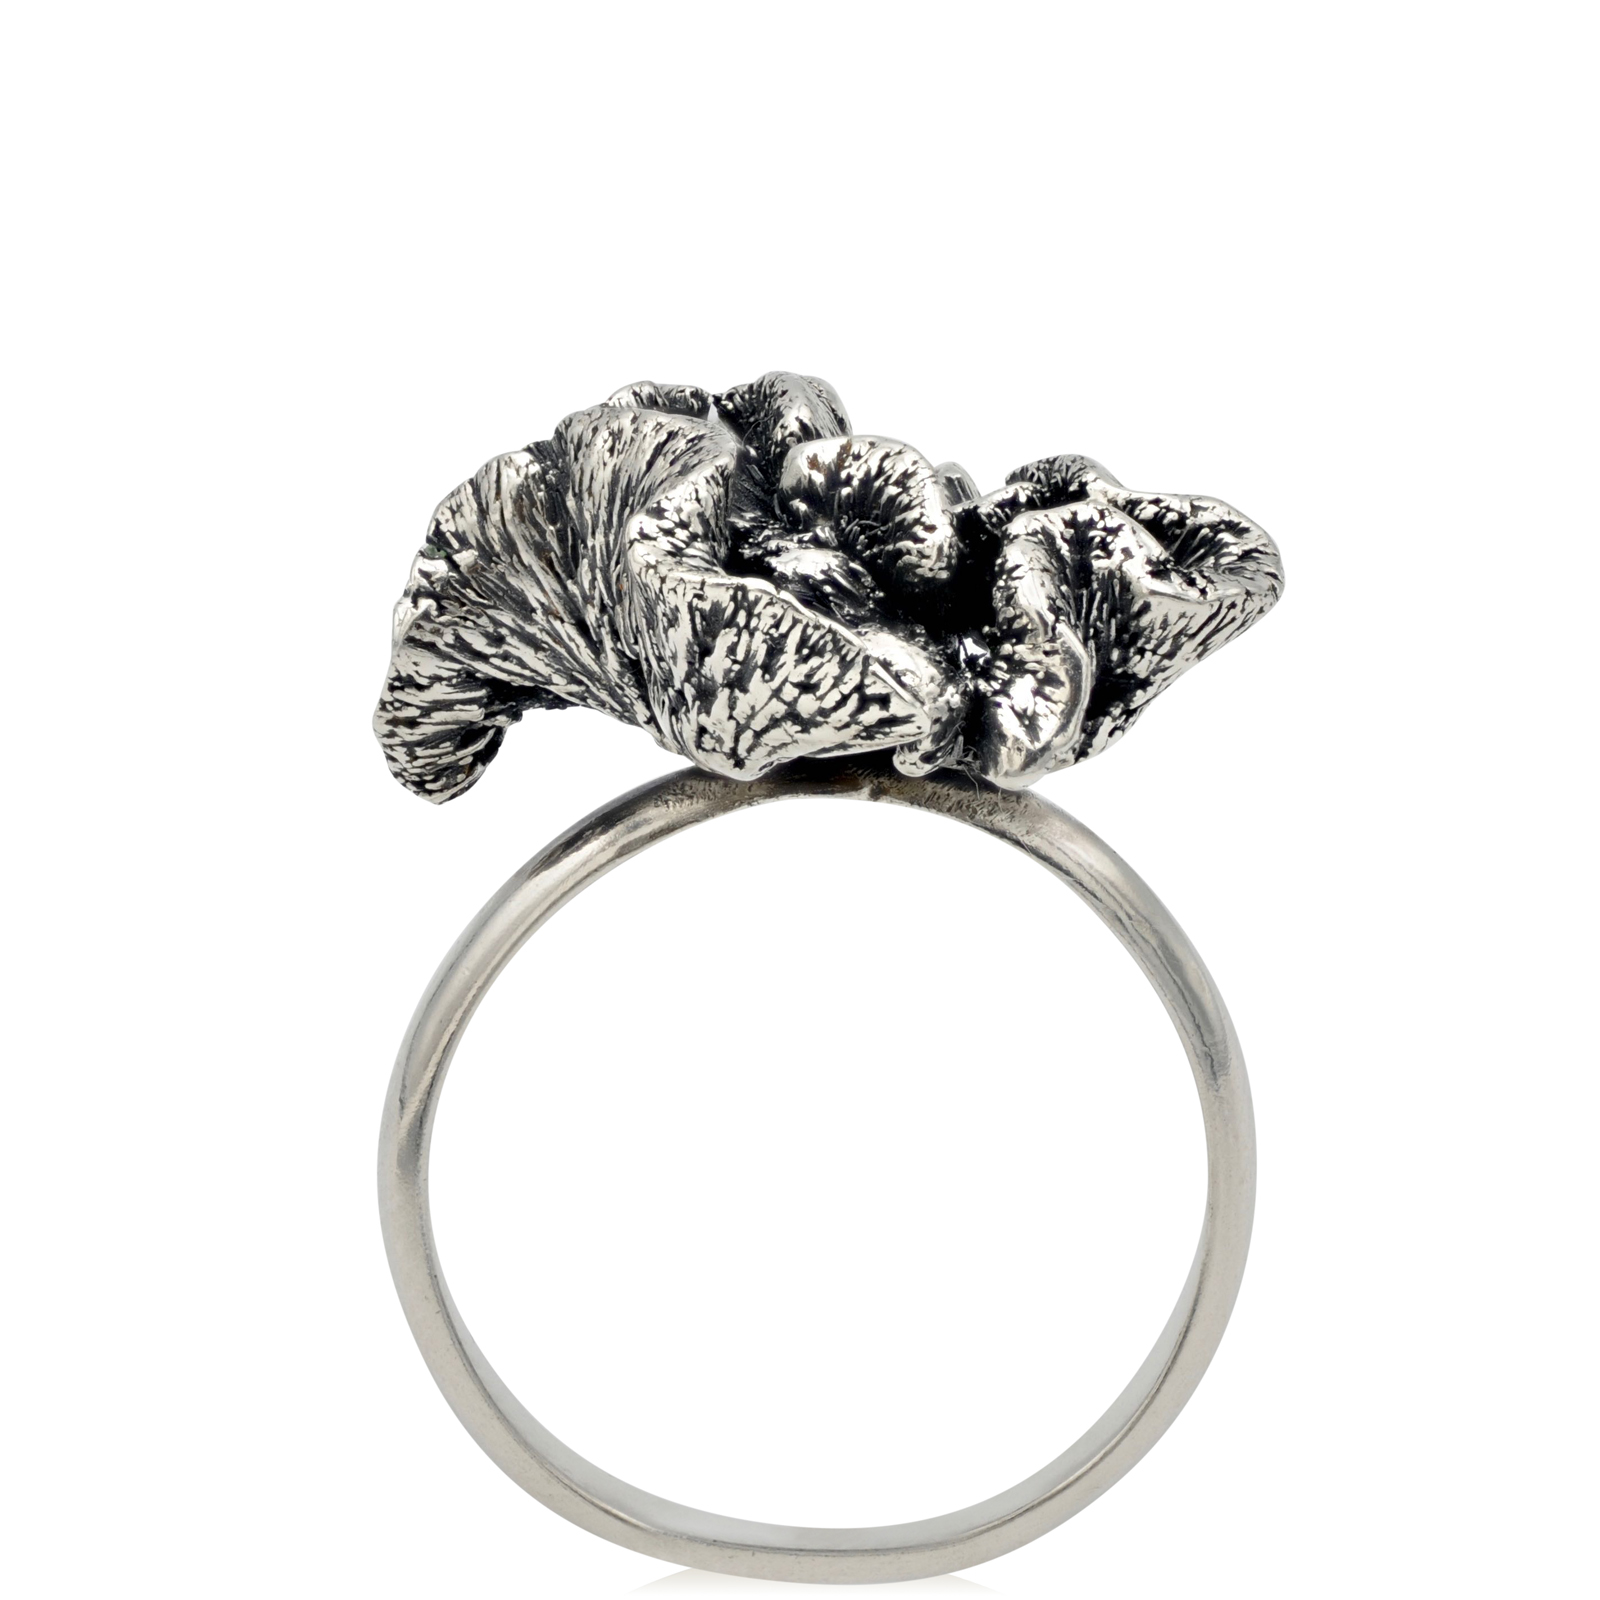 cockscombs-antiqued-sterling-silver-ring-1.jpg